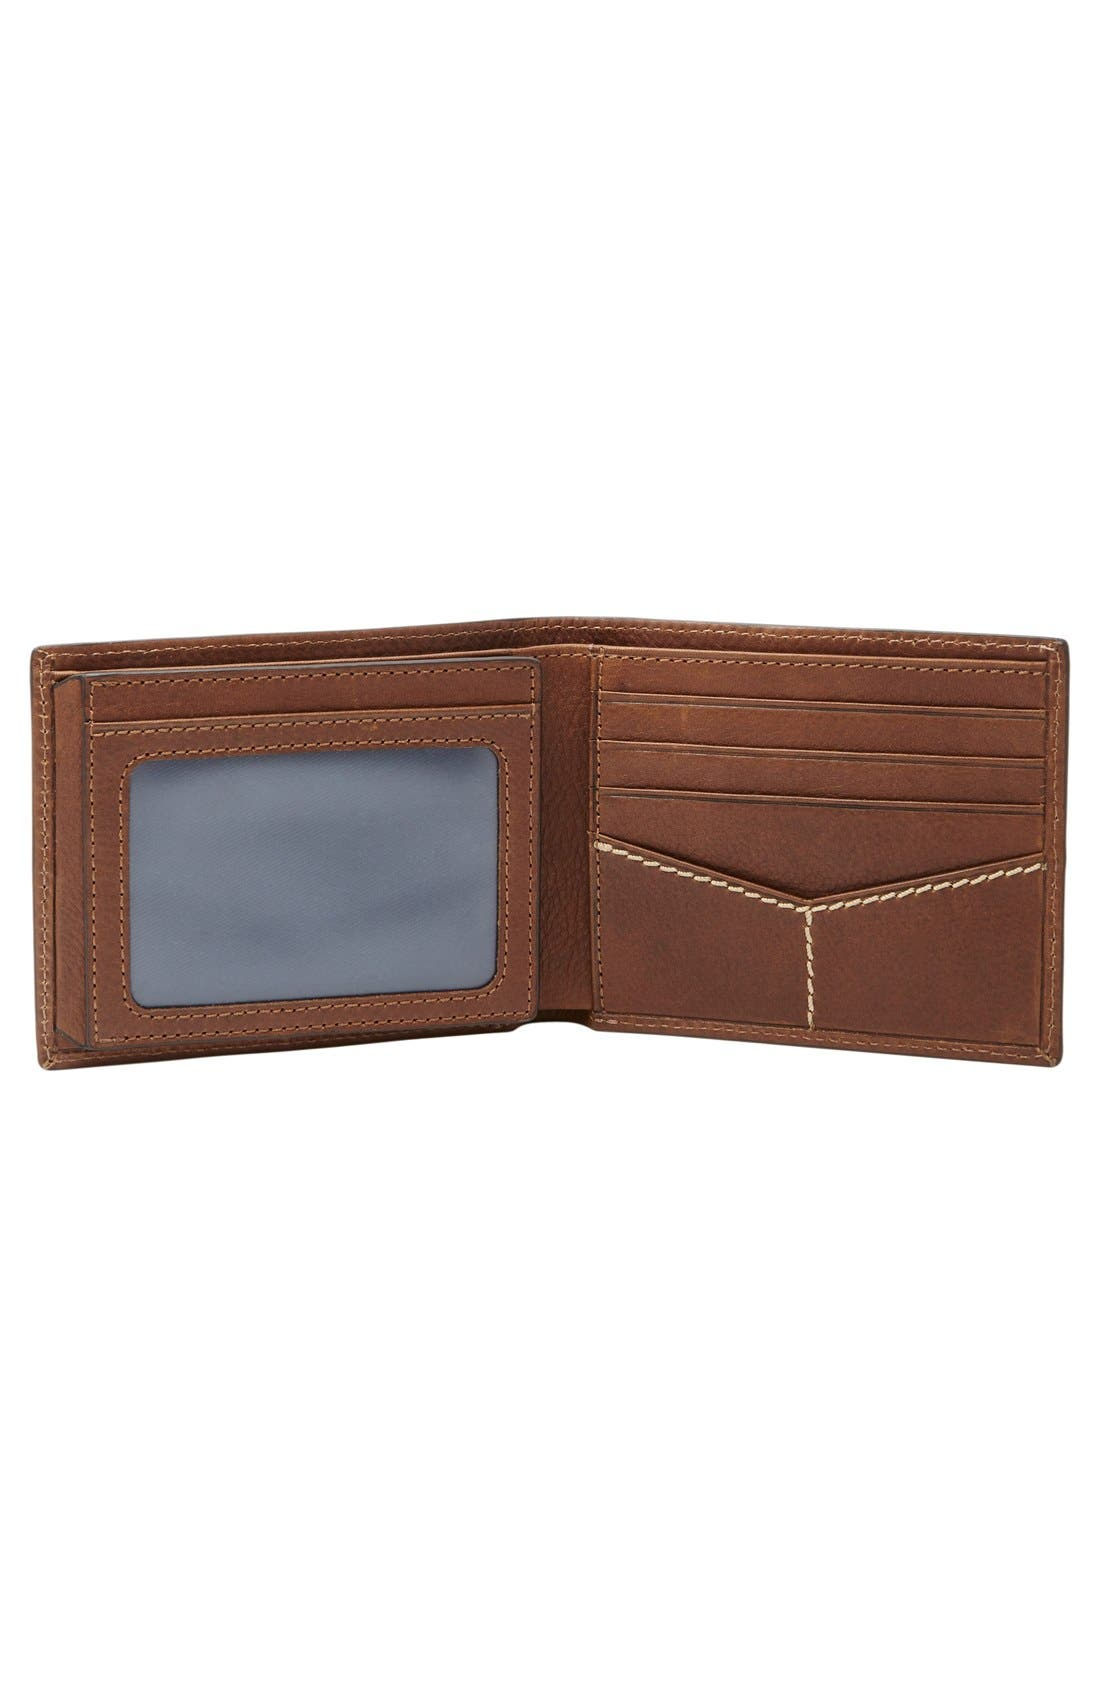 'Turk' Leather RFID Wallet,                             Alternate thumbnail 2, color,                             Brown